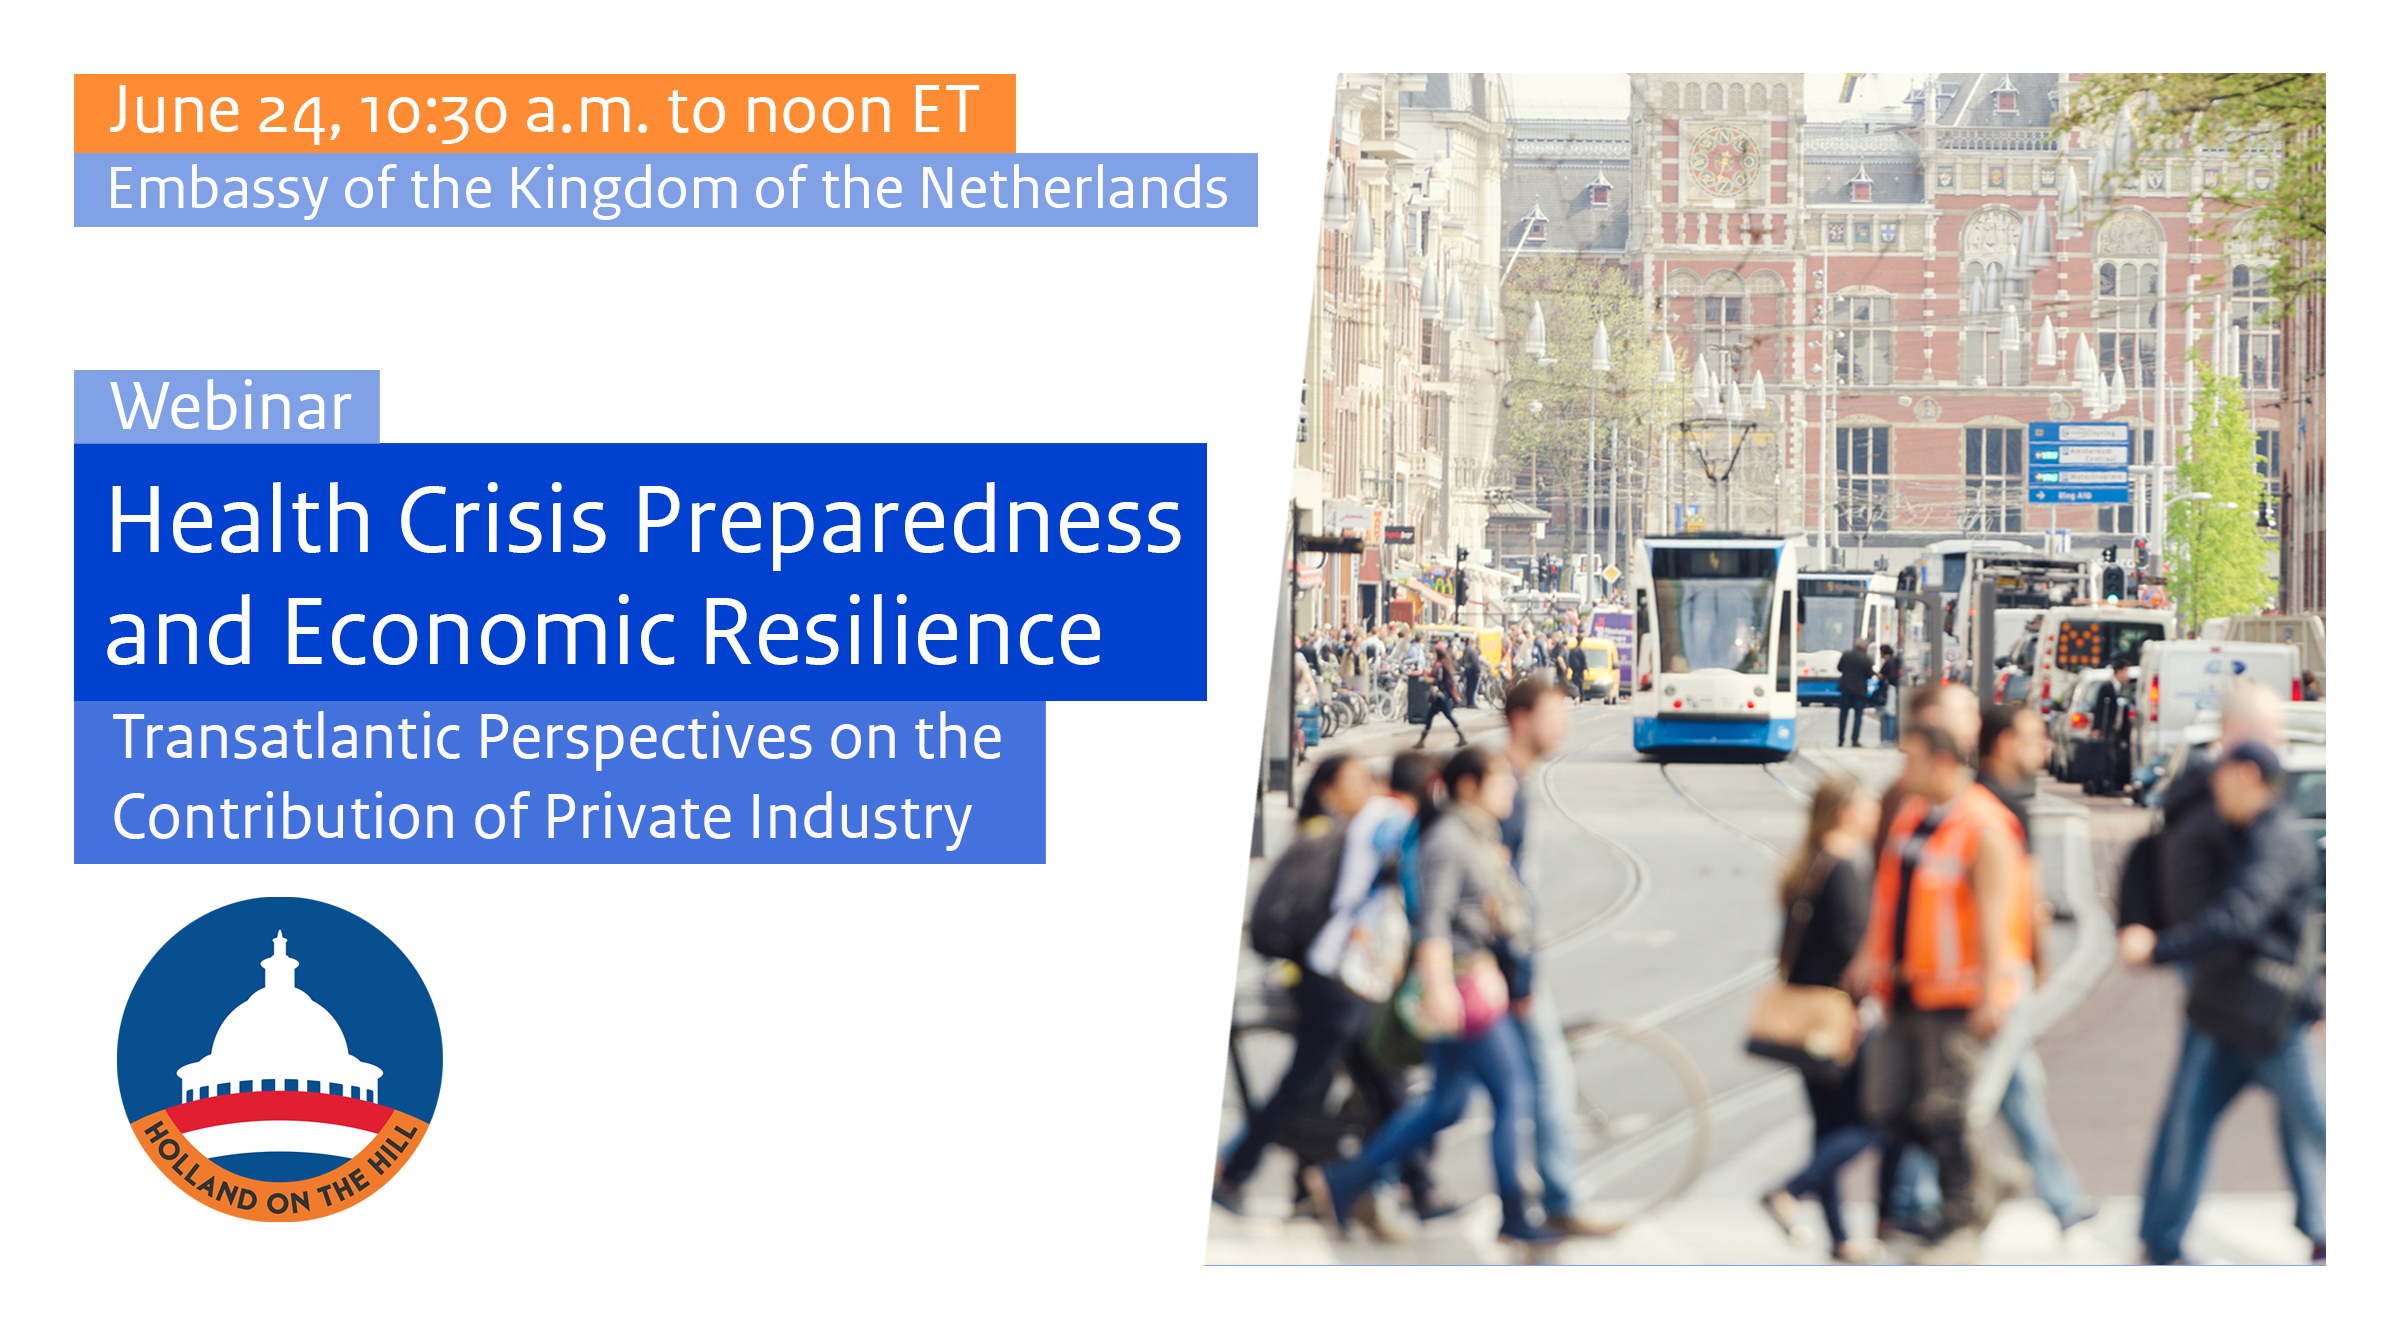 Webinar to focus on health crisis preparedness and economic resilience